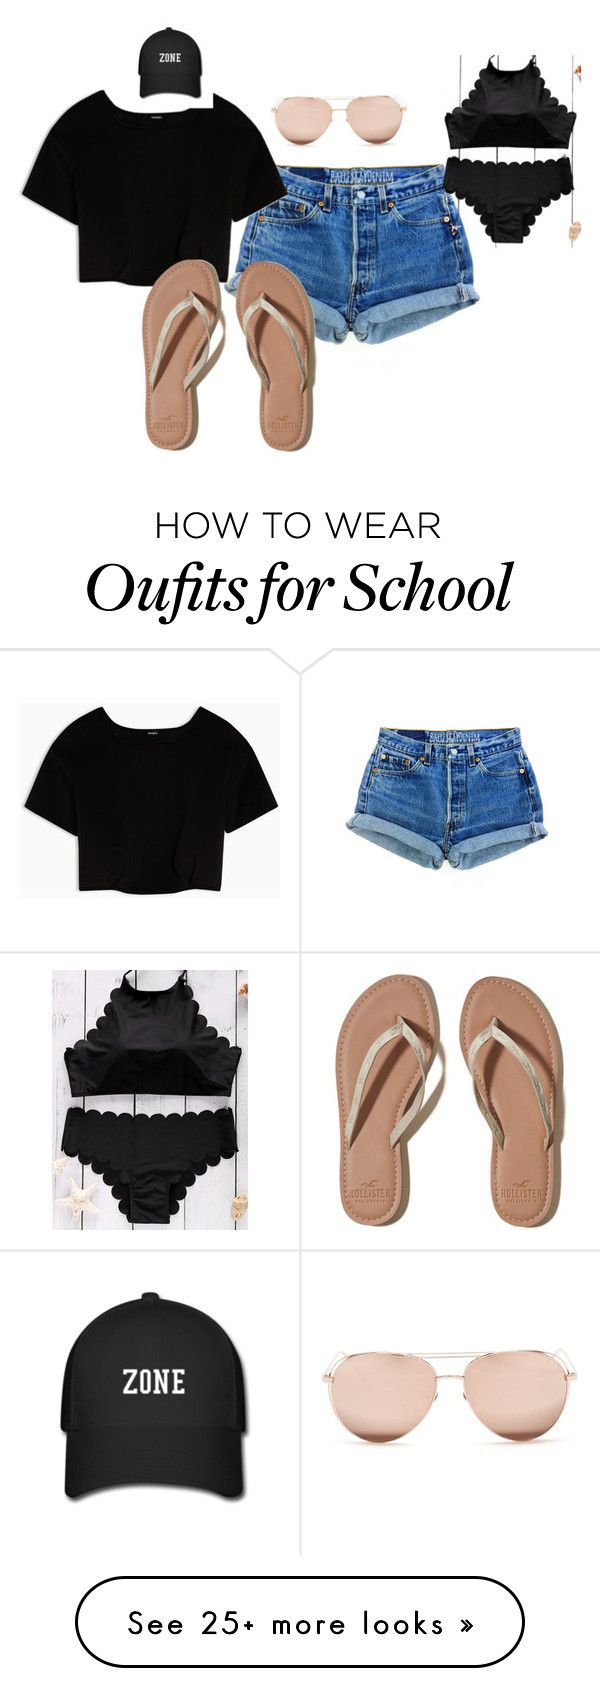 """Untitled #30"" by mckessler on Polyvore featuring Max&Co., Hollister Co. and Linda Farrow"